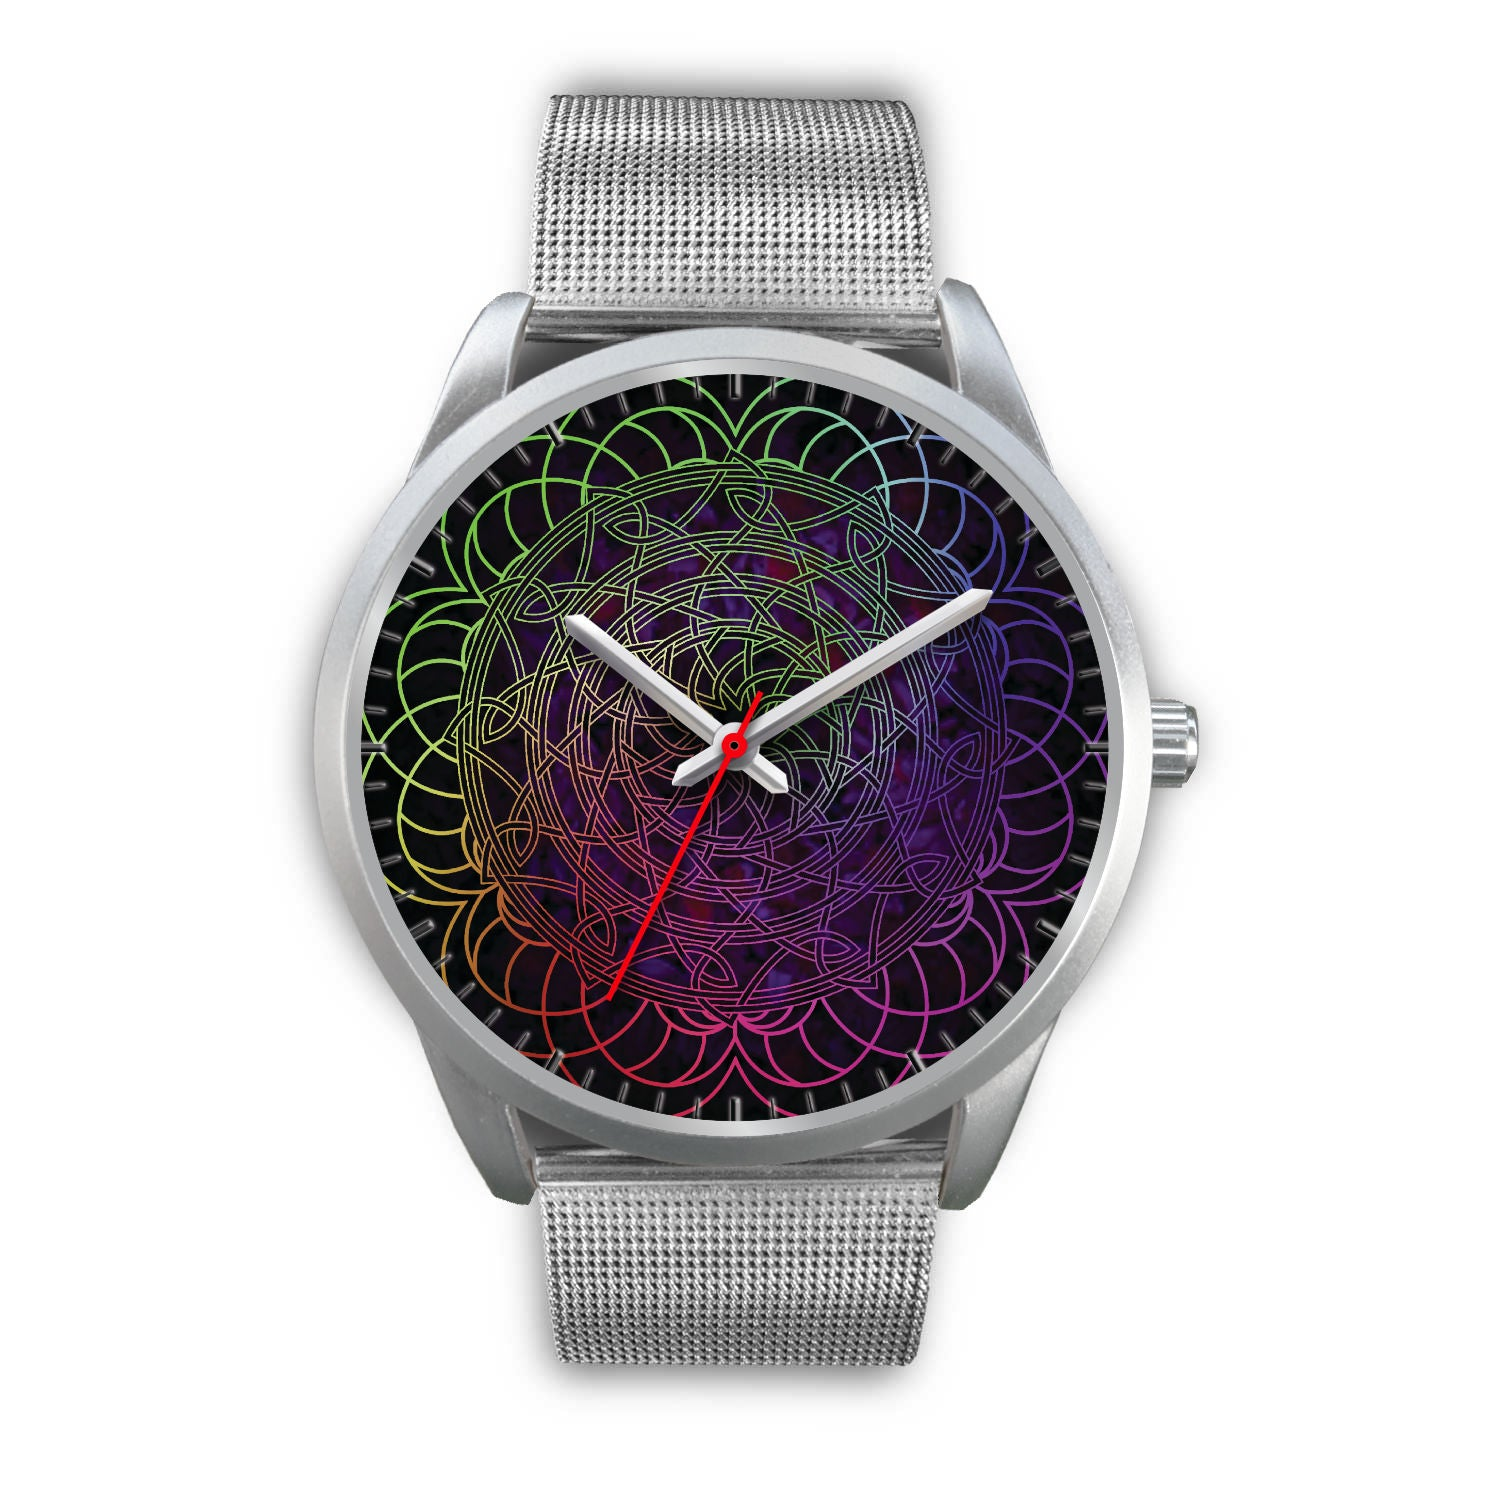 Silver Spiral Design Watch